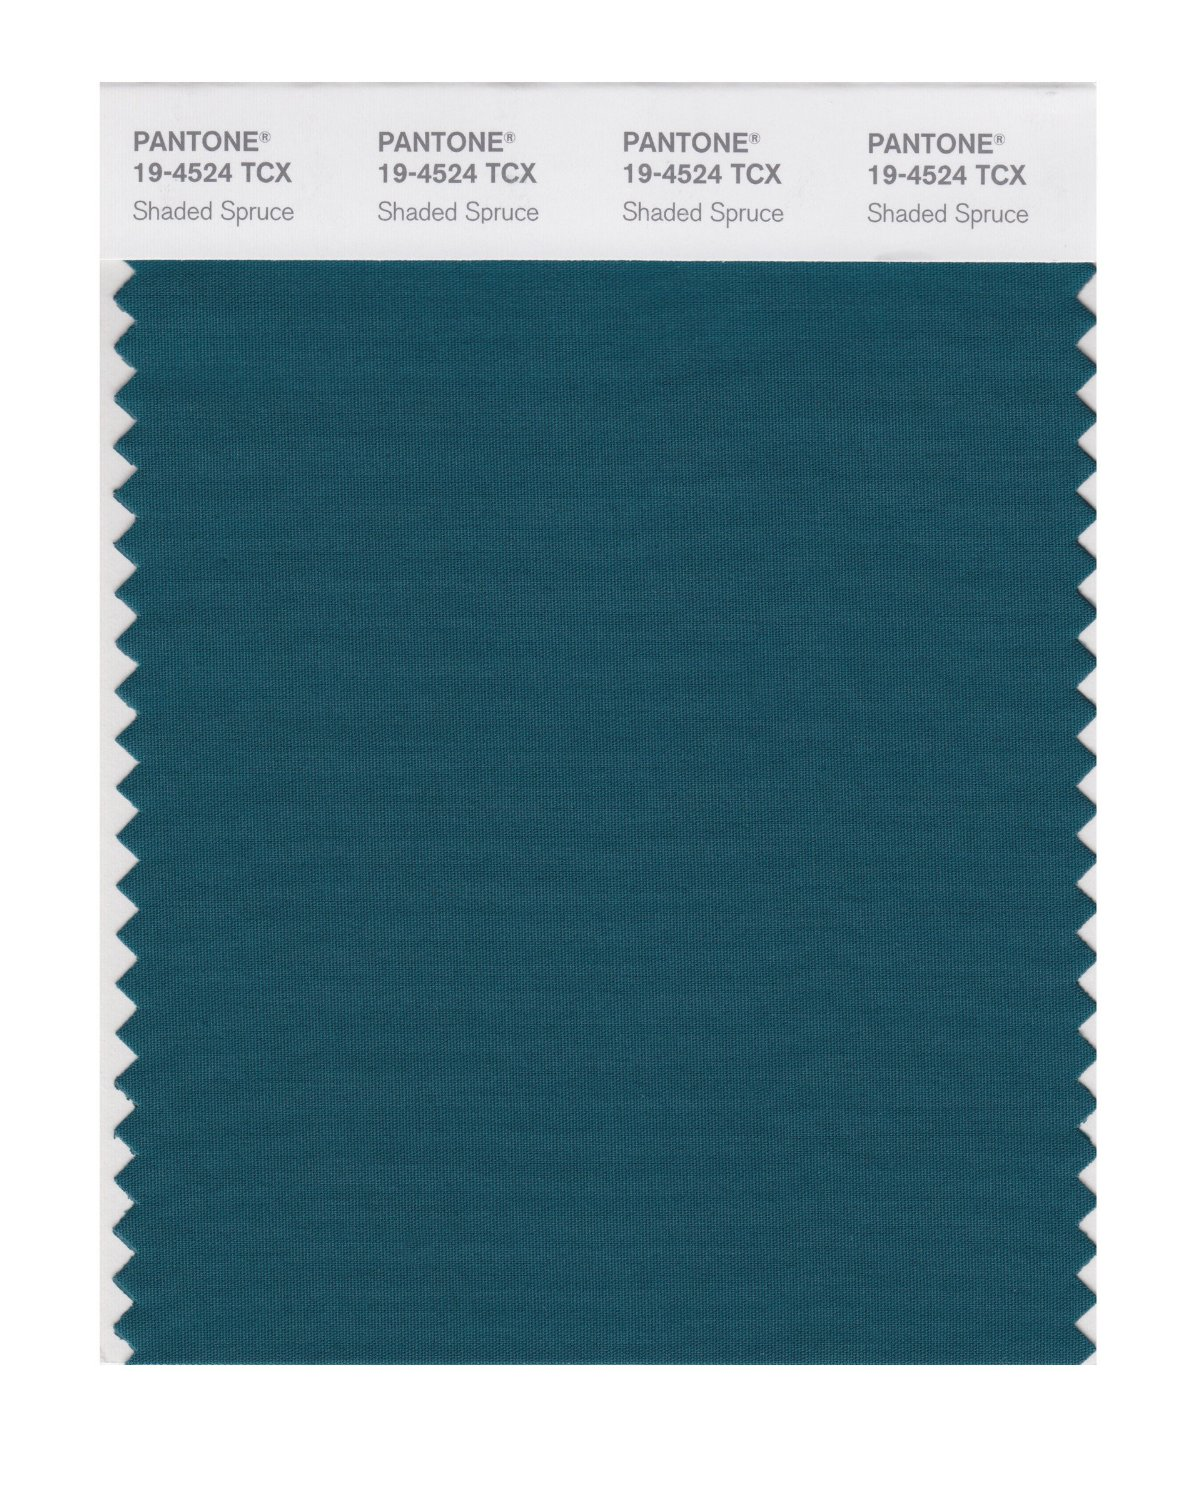 Pantone Smart Swatch 19-4524 Shaded Spruce